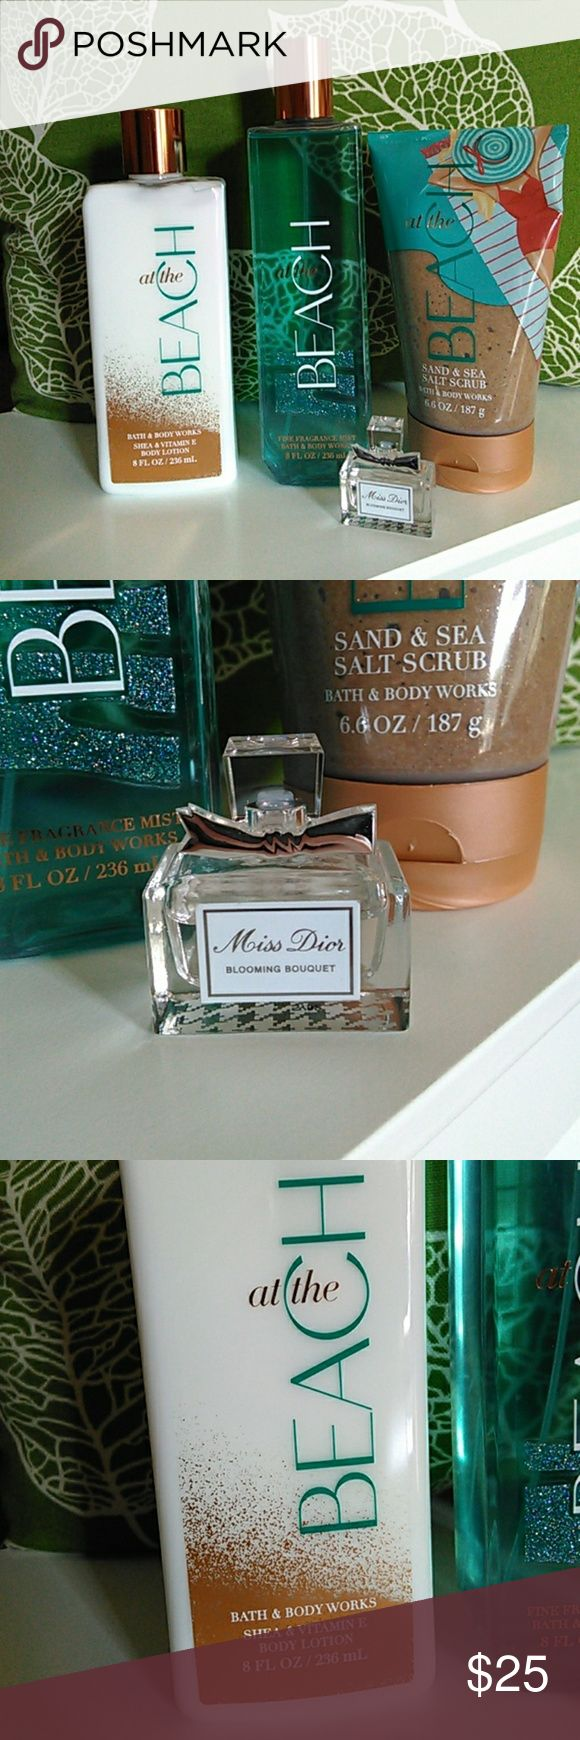 Miss Dior Perfume and NWT shower set at the Beach 🏖️ shea body lotion, body spray, and shower scrub from Bath and Body Works ALL NWT. Comes with **slightly** used Miss Dior Blooming Bouquet perfume for travel!!!! See pics!! This is a **really** good deal, so I'm pretty firm on the price. Bundle to save money! Comes with a Dior gift bag :) **Smoke free home 🚭** Christian Dior Other